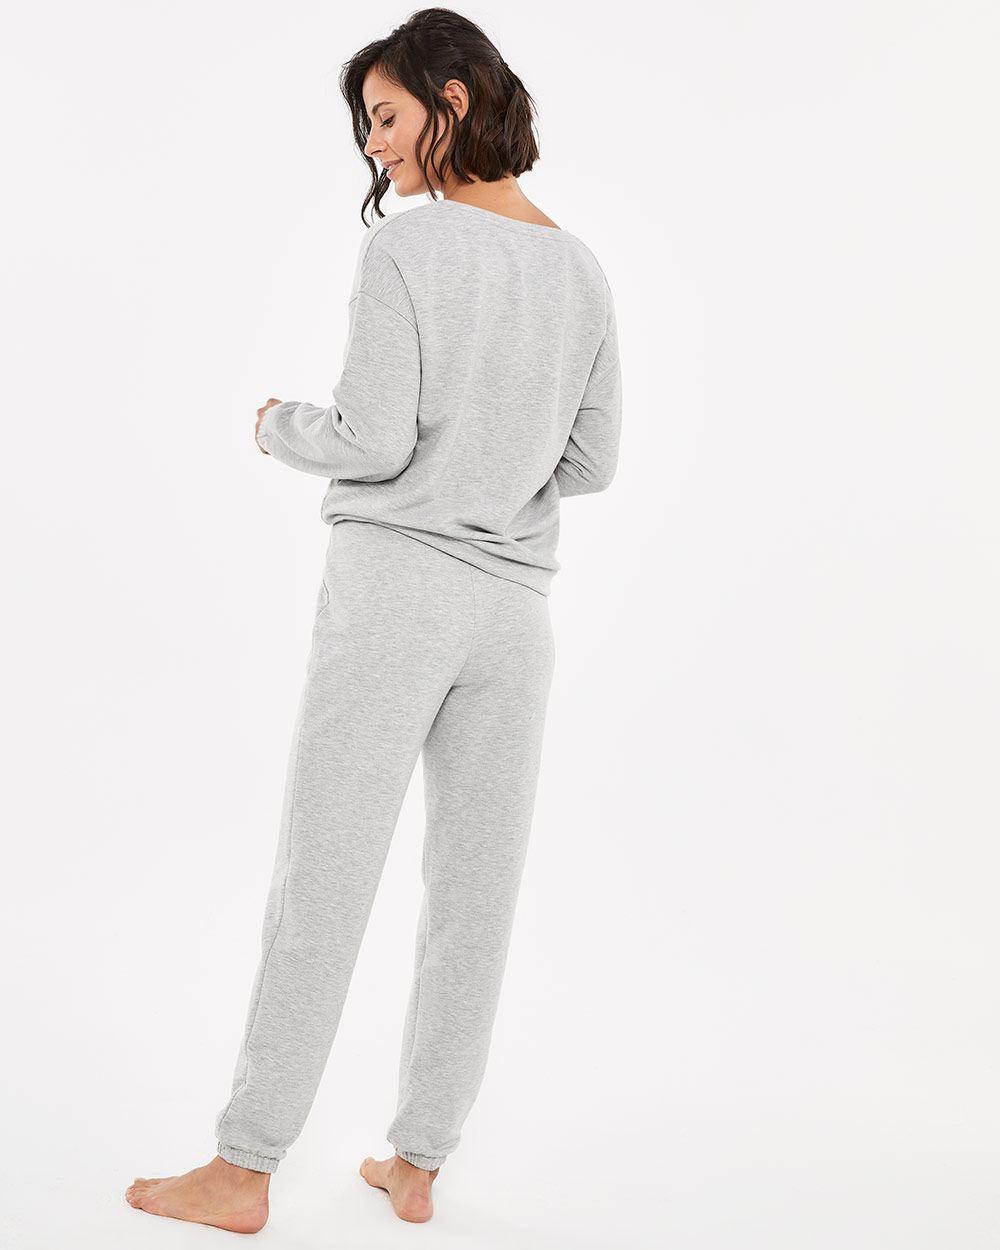 French Terry Jogger PJ Set